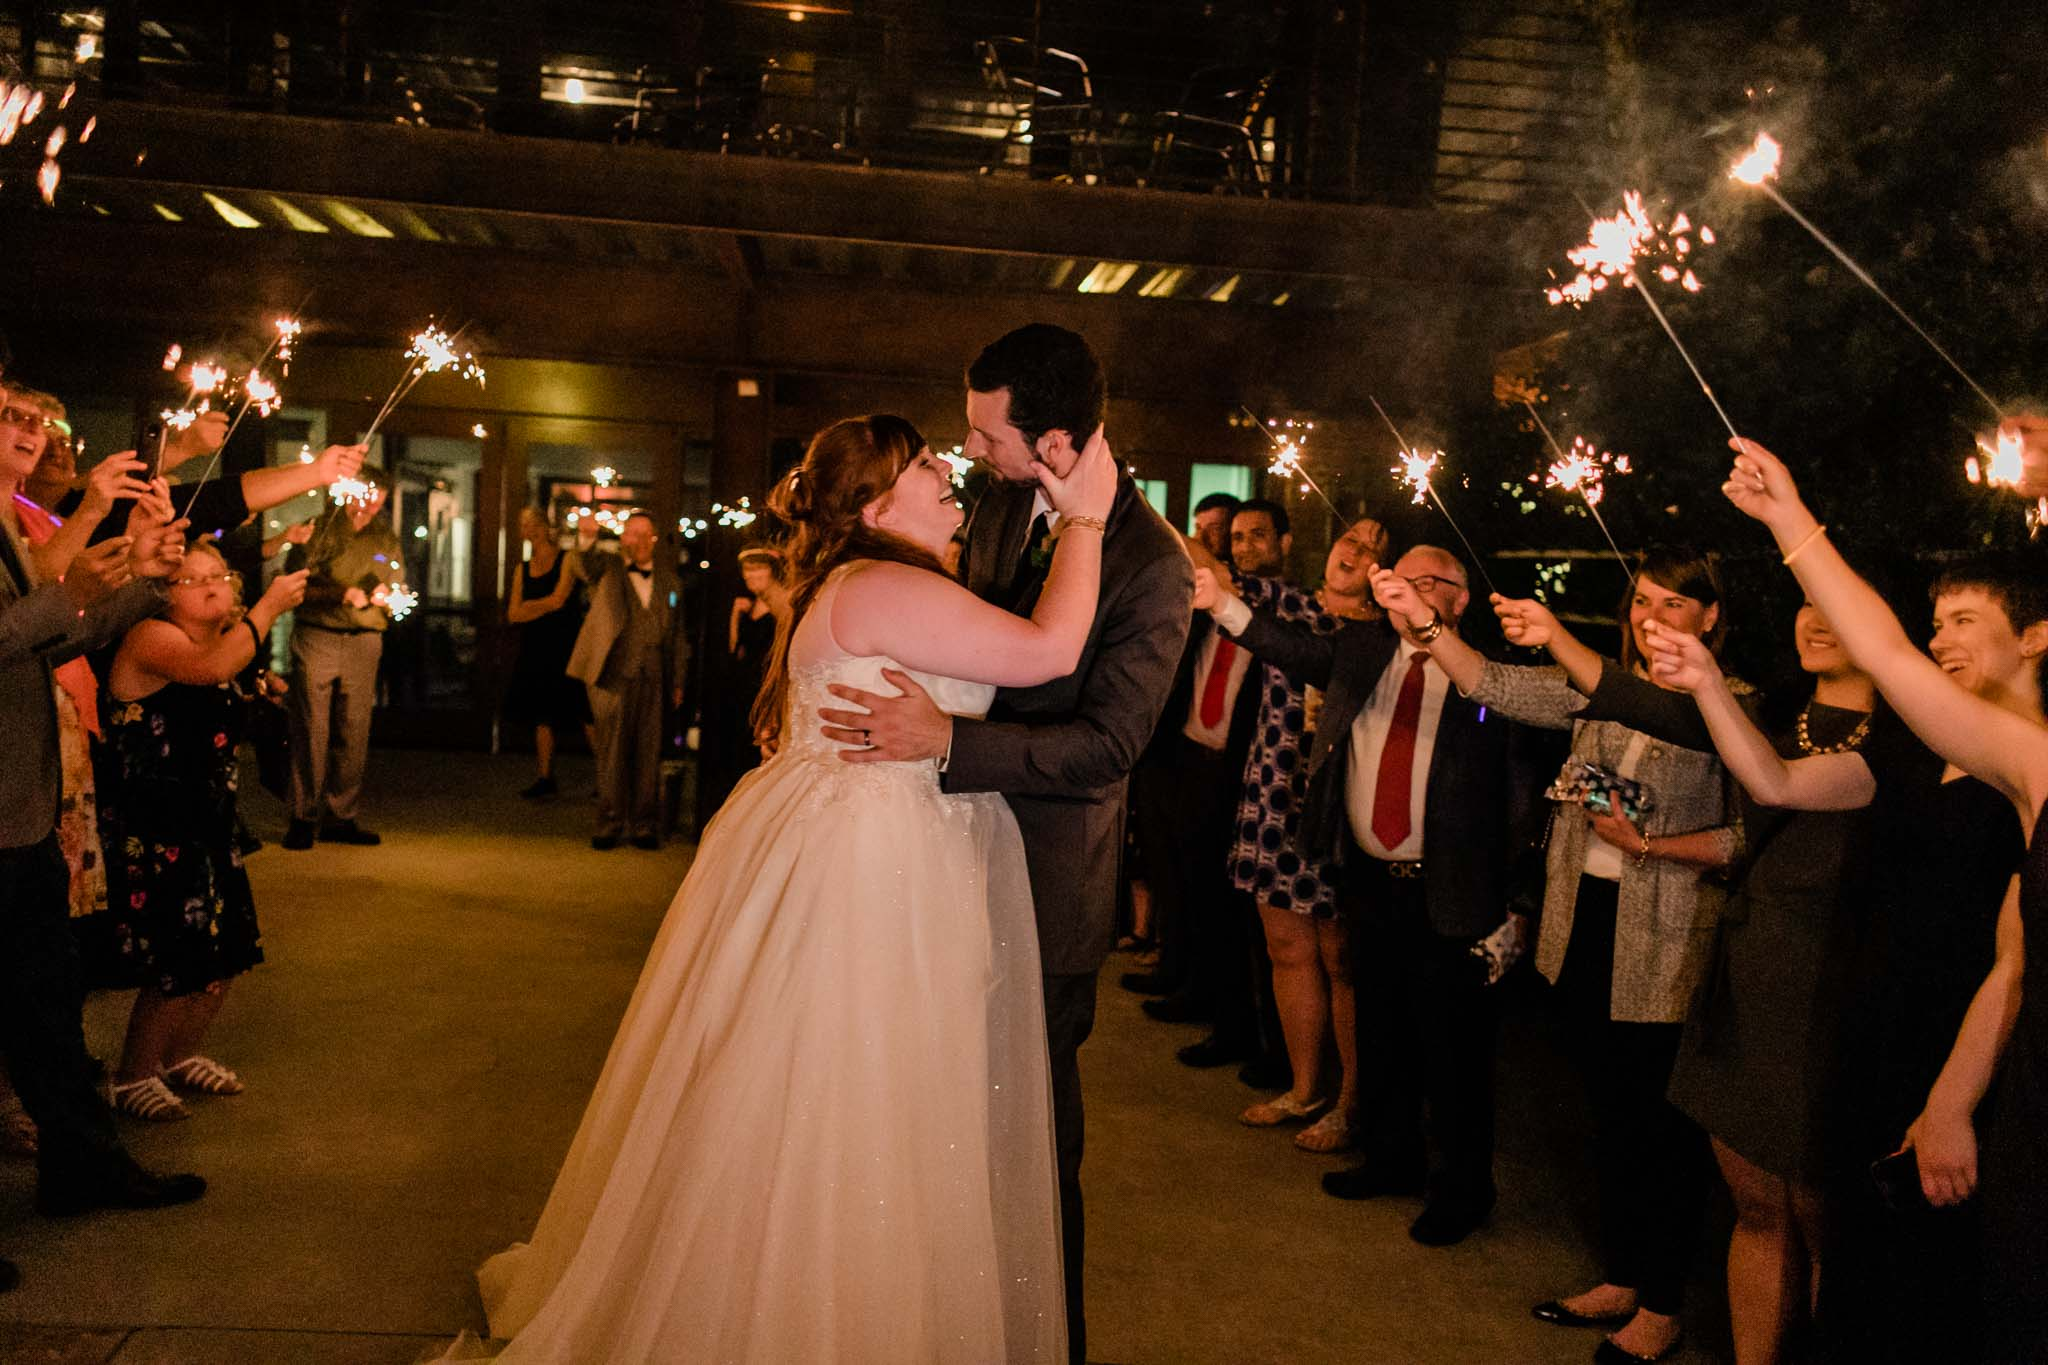 Haw River Ballroom Wedding | Durham Photographer | By G. Lin Photography | Sparkler sendoff